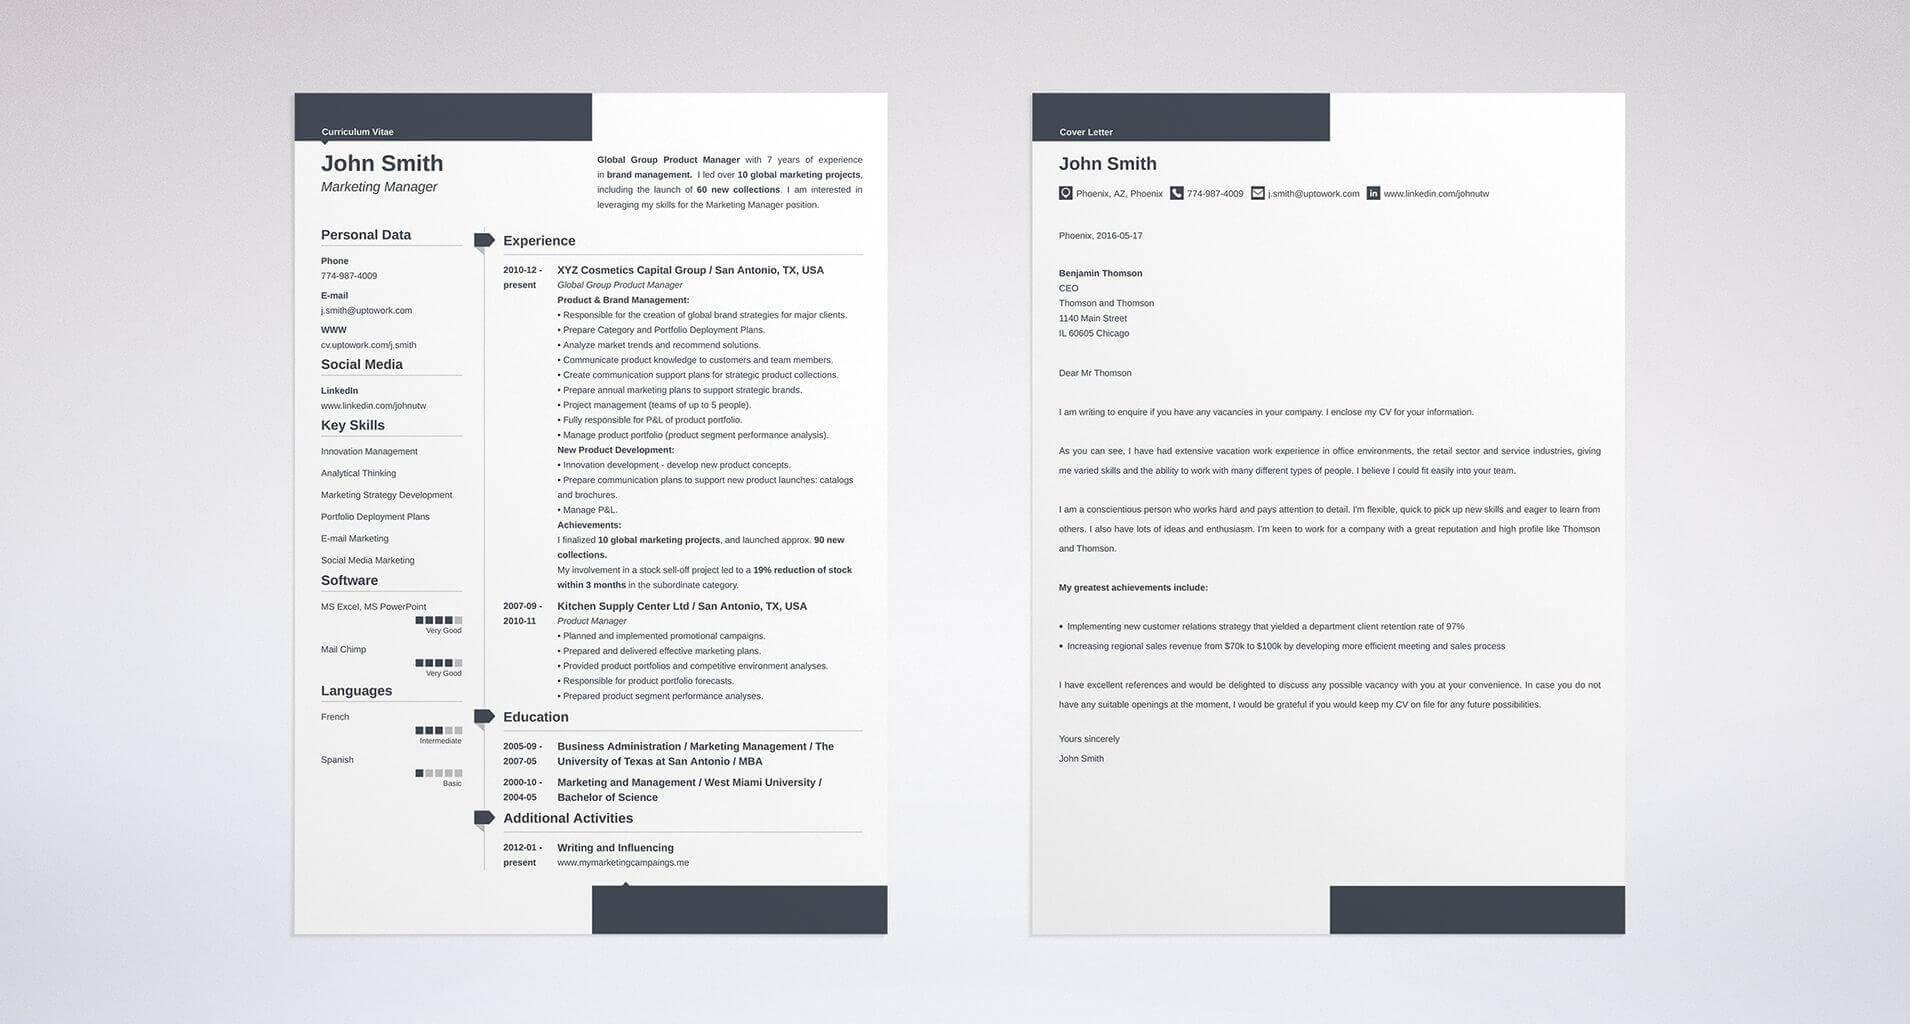 licenses certifications on resume sample easy tips listing cover letter and template Resume Listing Certifications On Resume